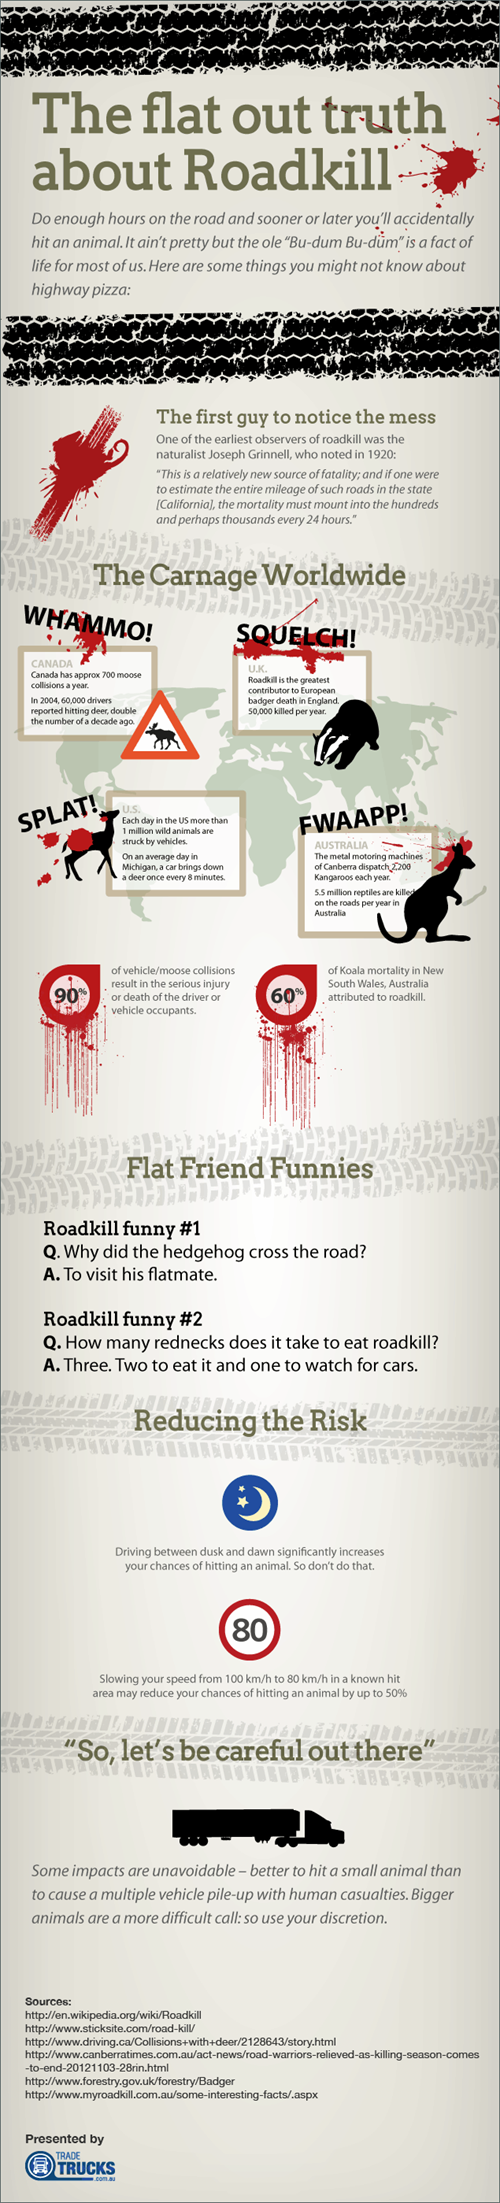 The -flat -out -truth -about -roadkill